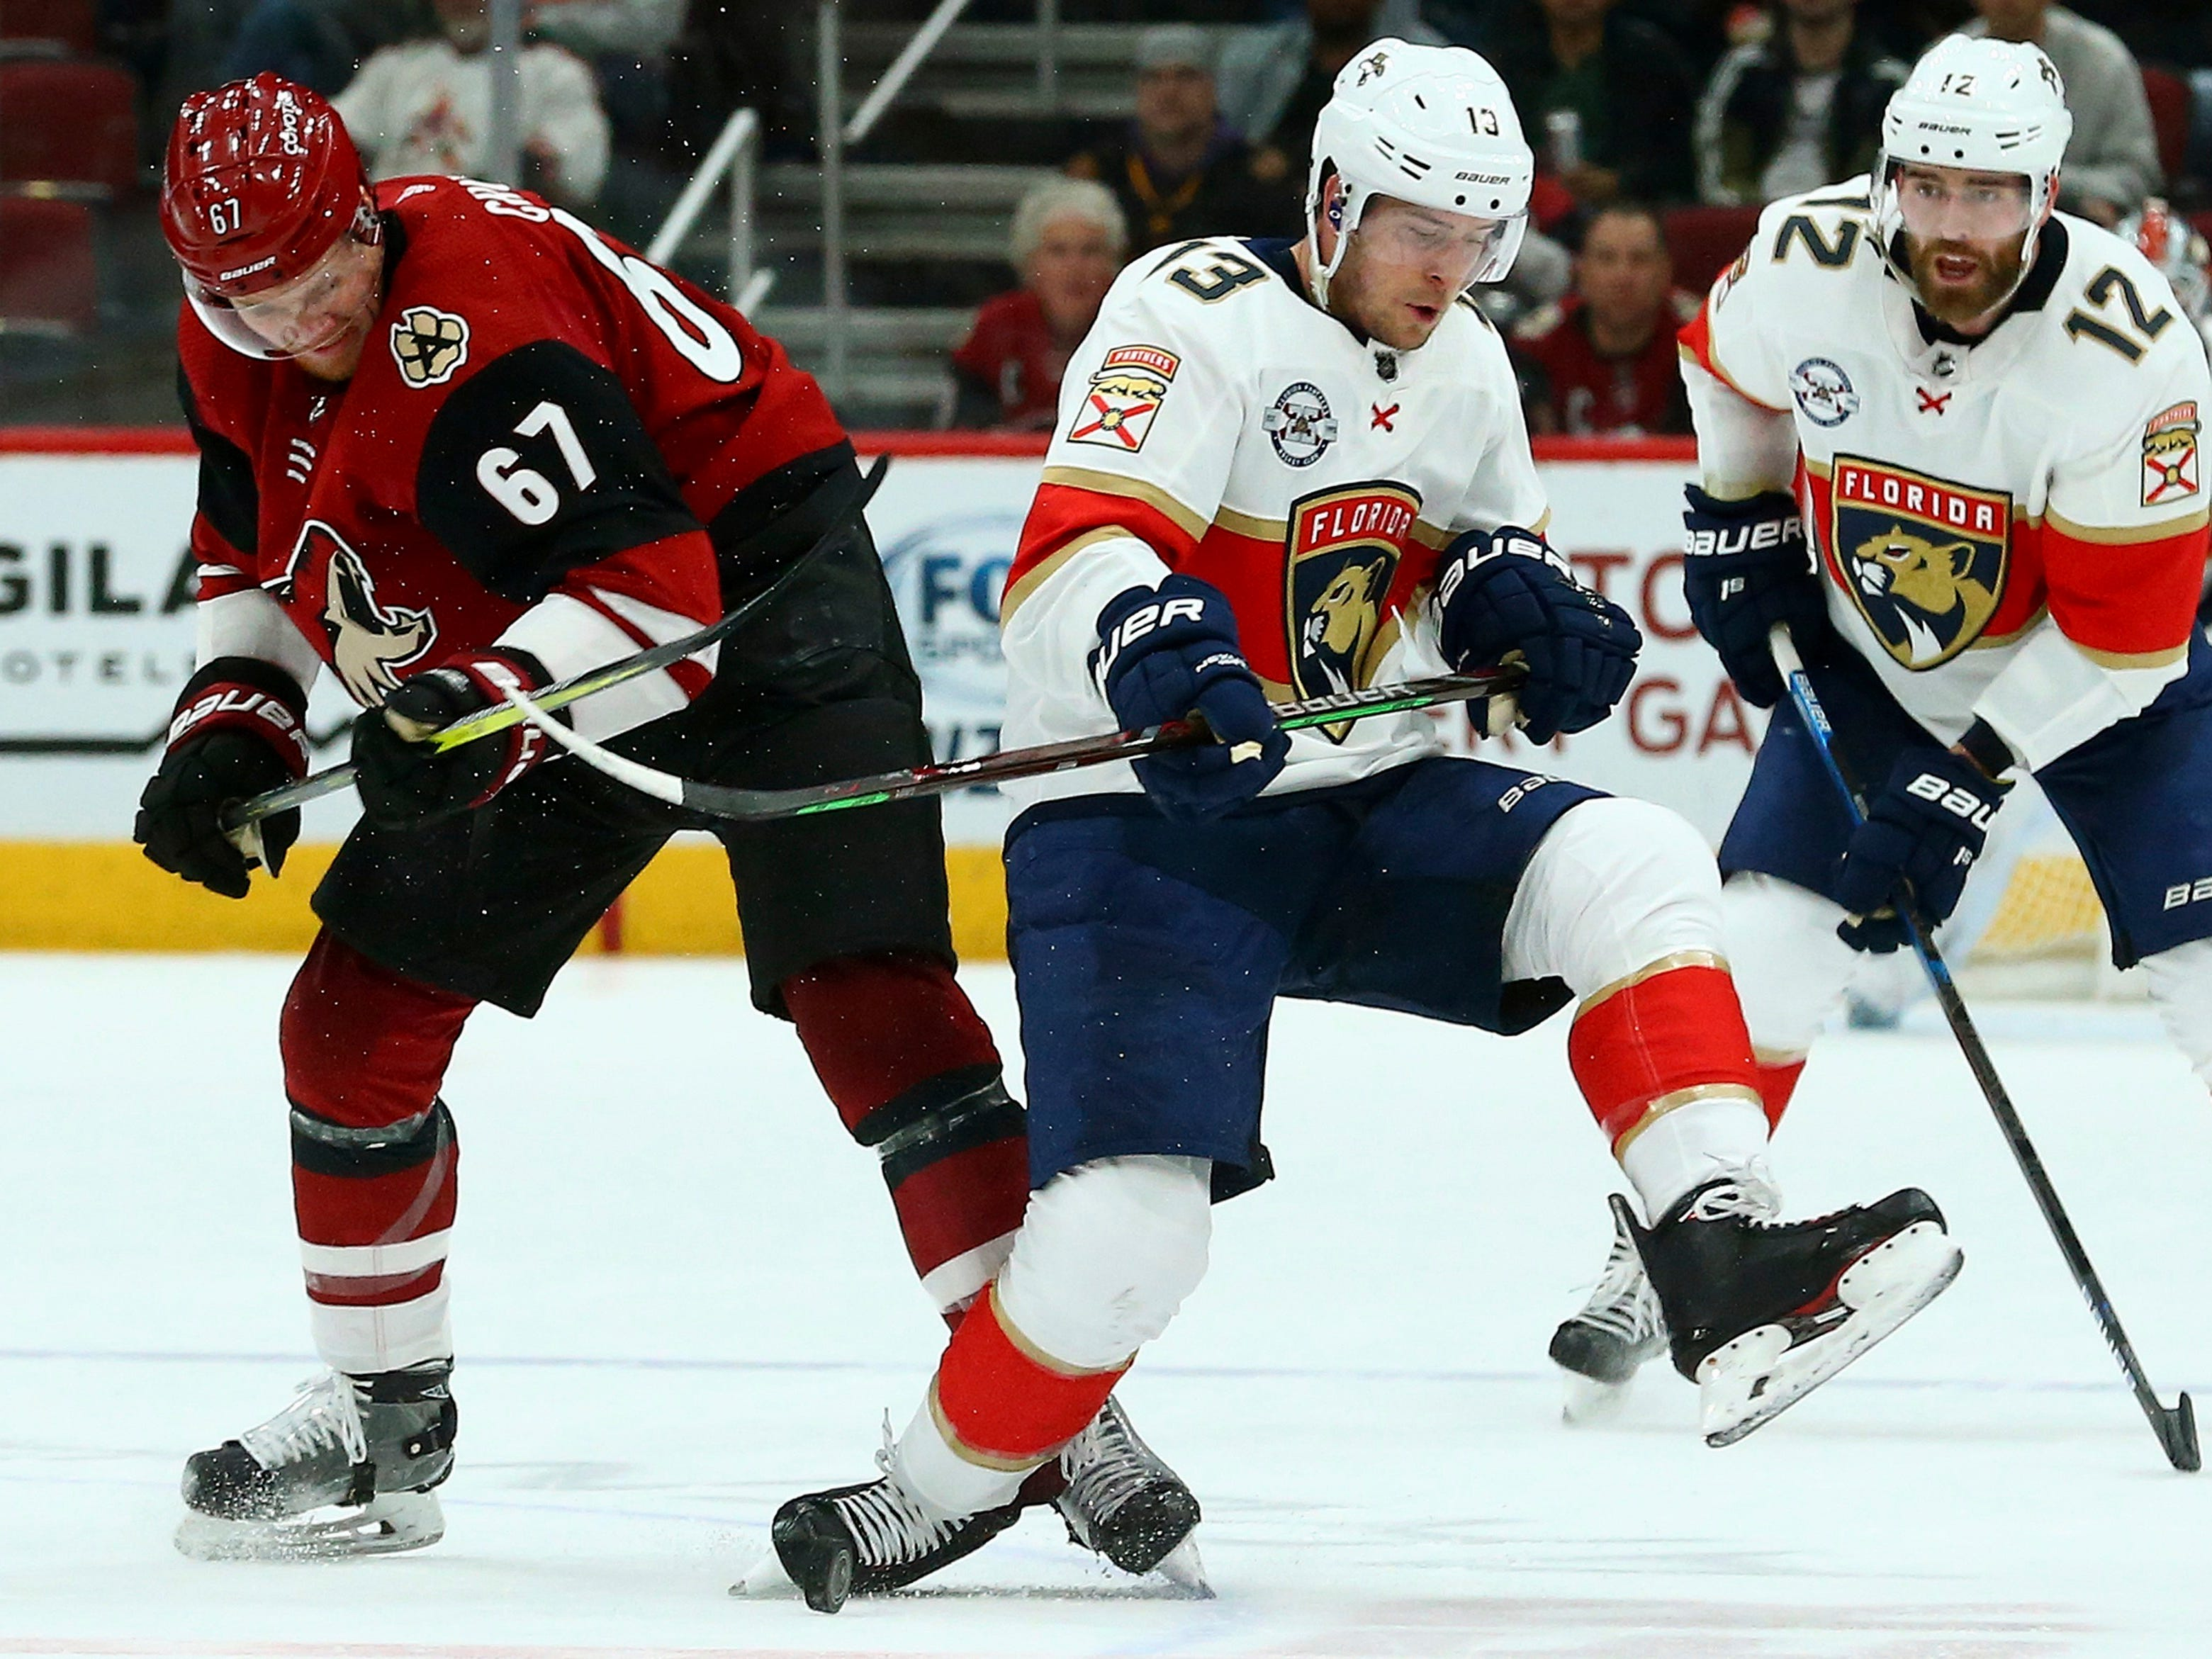 Arizona Coyotes left wing Lawson Crouse (67) competes with Florida Panthers defenseman Mark Pysyk (13) for the puck as Panthers defenseman Ian McCoshen (12) watches during the first period of an NHL hockey game Tuesday, Feb. 26, 2019, in Glendale, Ariz.